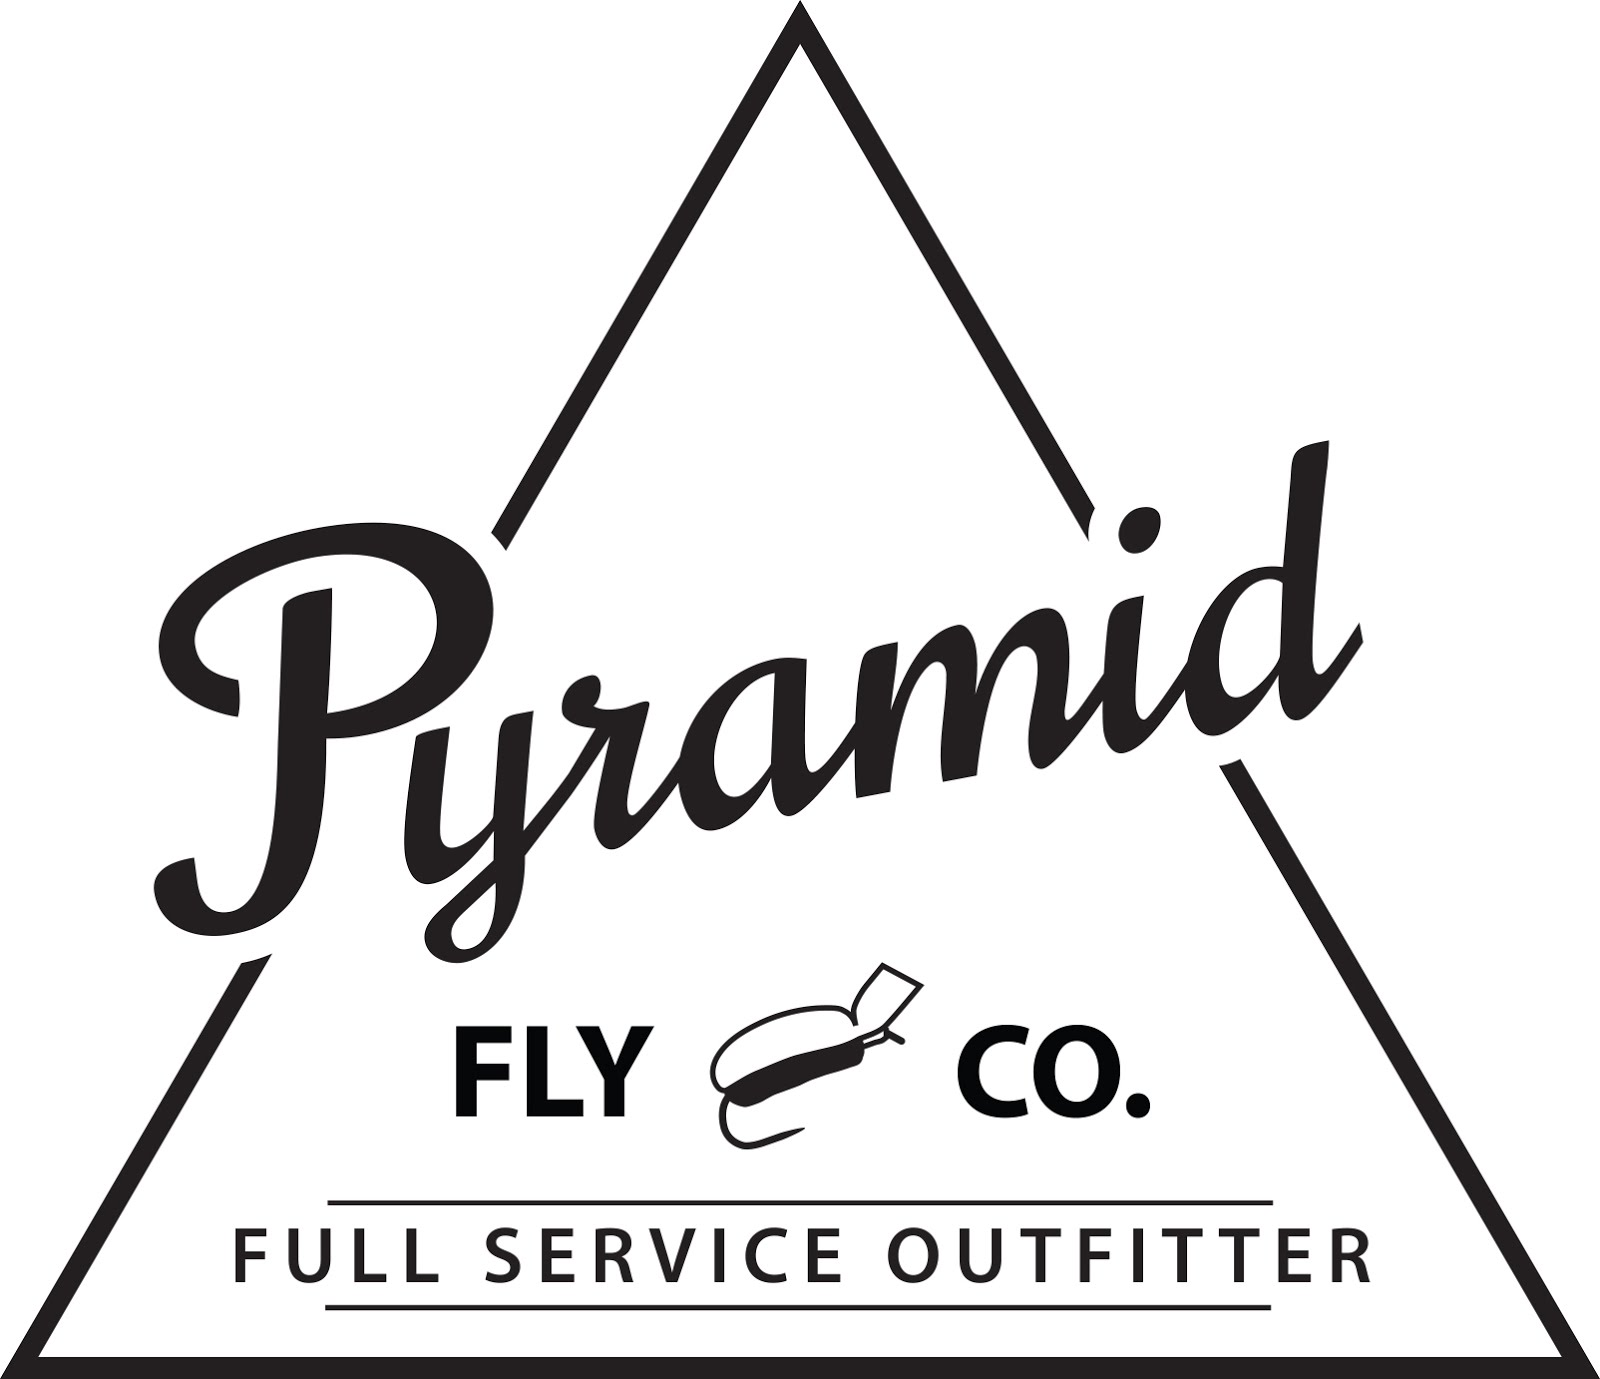 PYRAMID FLY CO